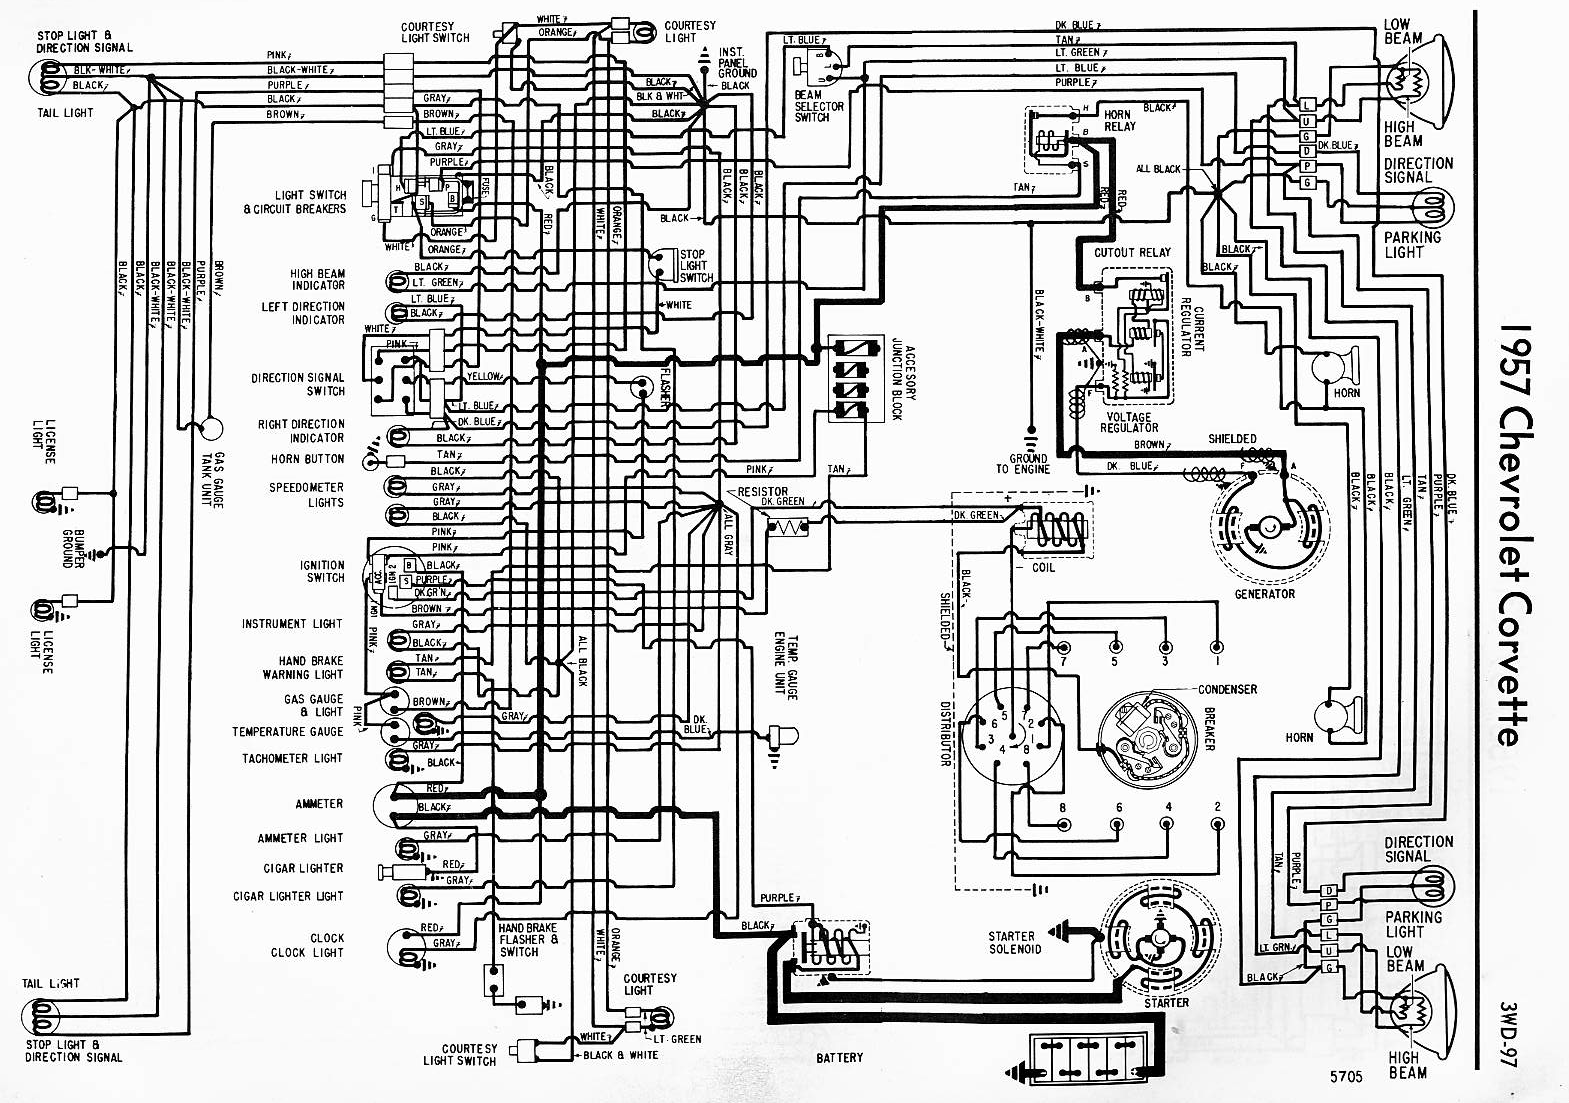 57 corvettte tracer schematic best one 1957 corvette wiring diagram willcox corvette, inc 1980 corvette wiring diagram at pacquiaovsvargaslive.co